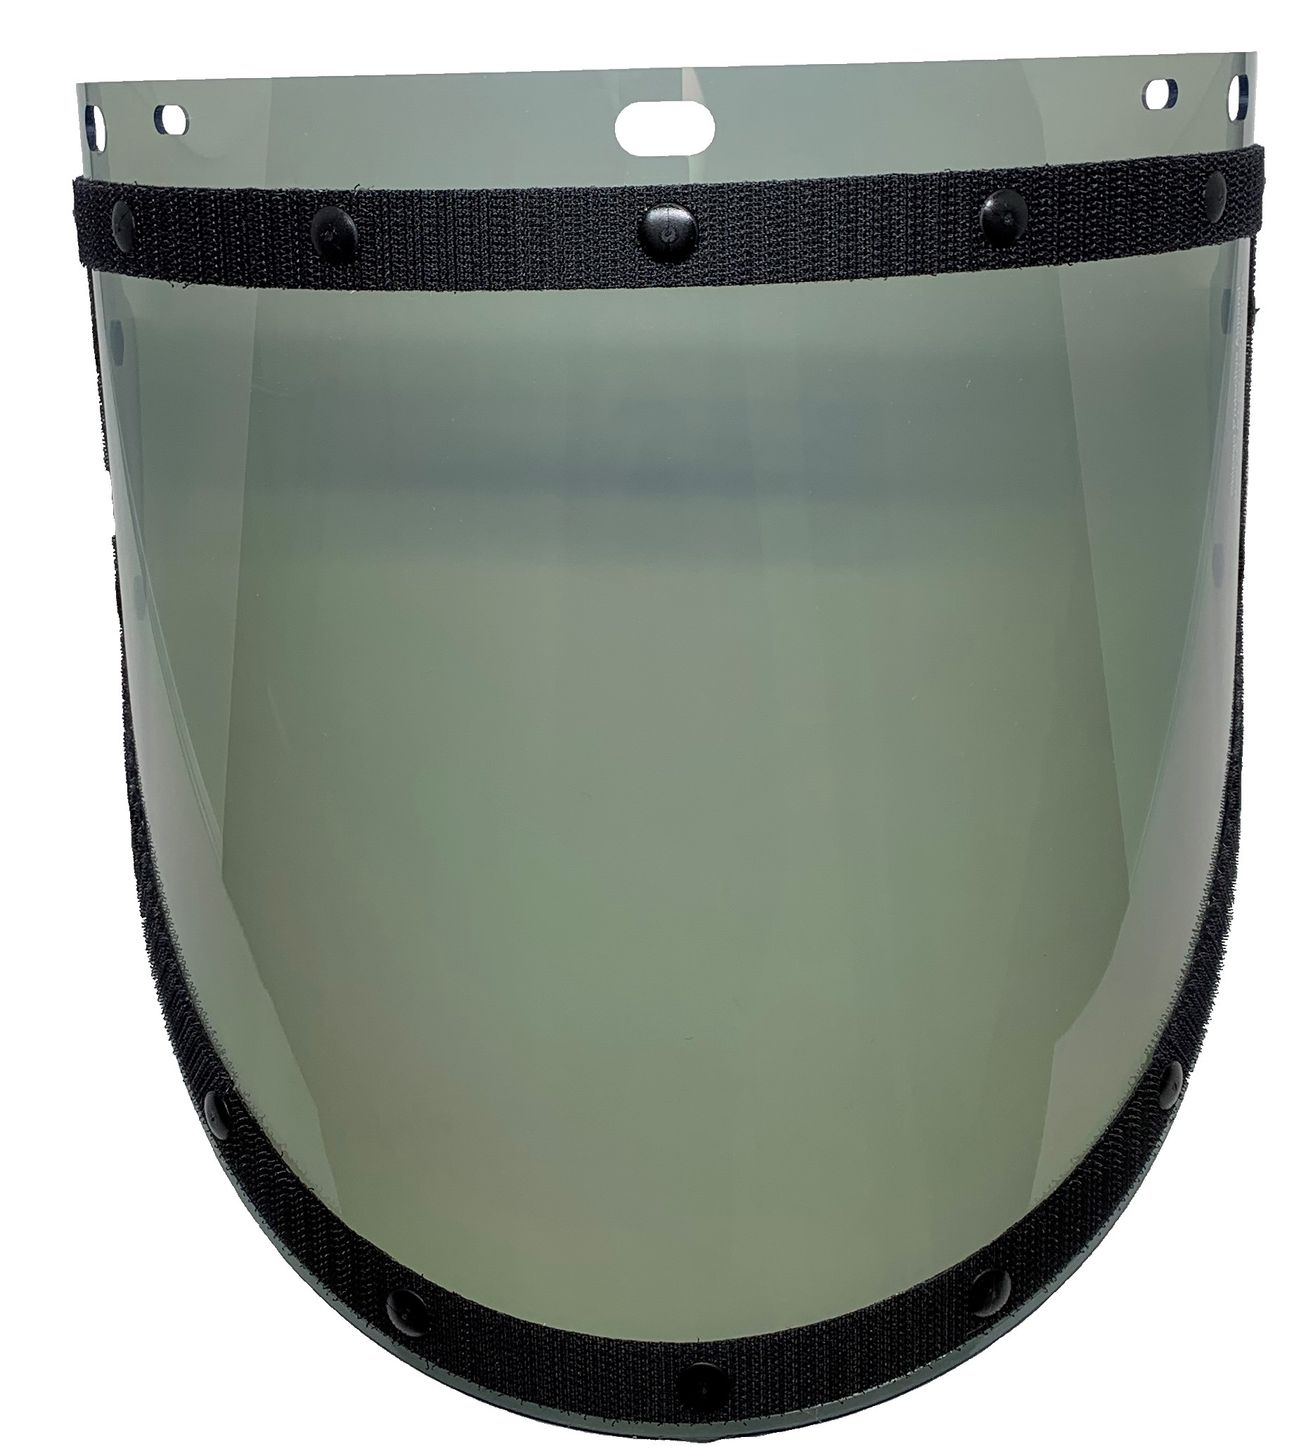 cpa-replacement-visors-for-overhoods-cpwv-arc-40htv-front.jpg